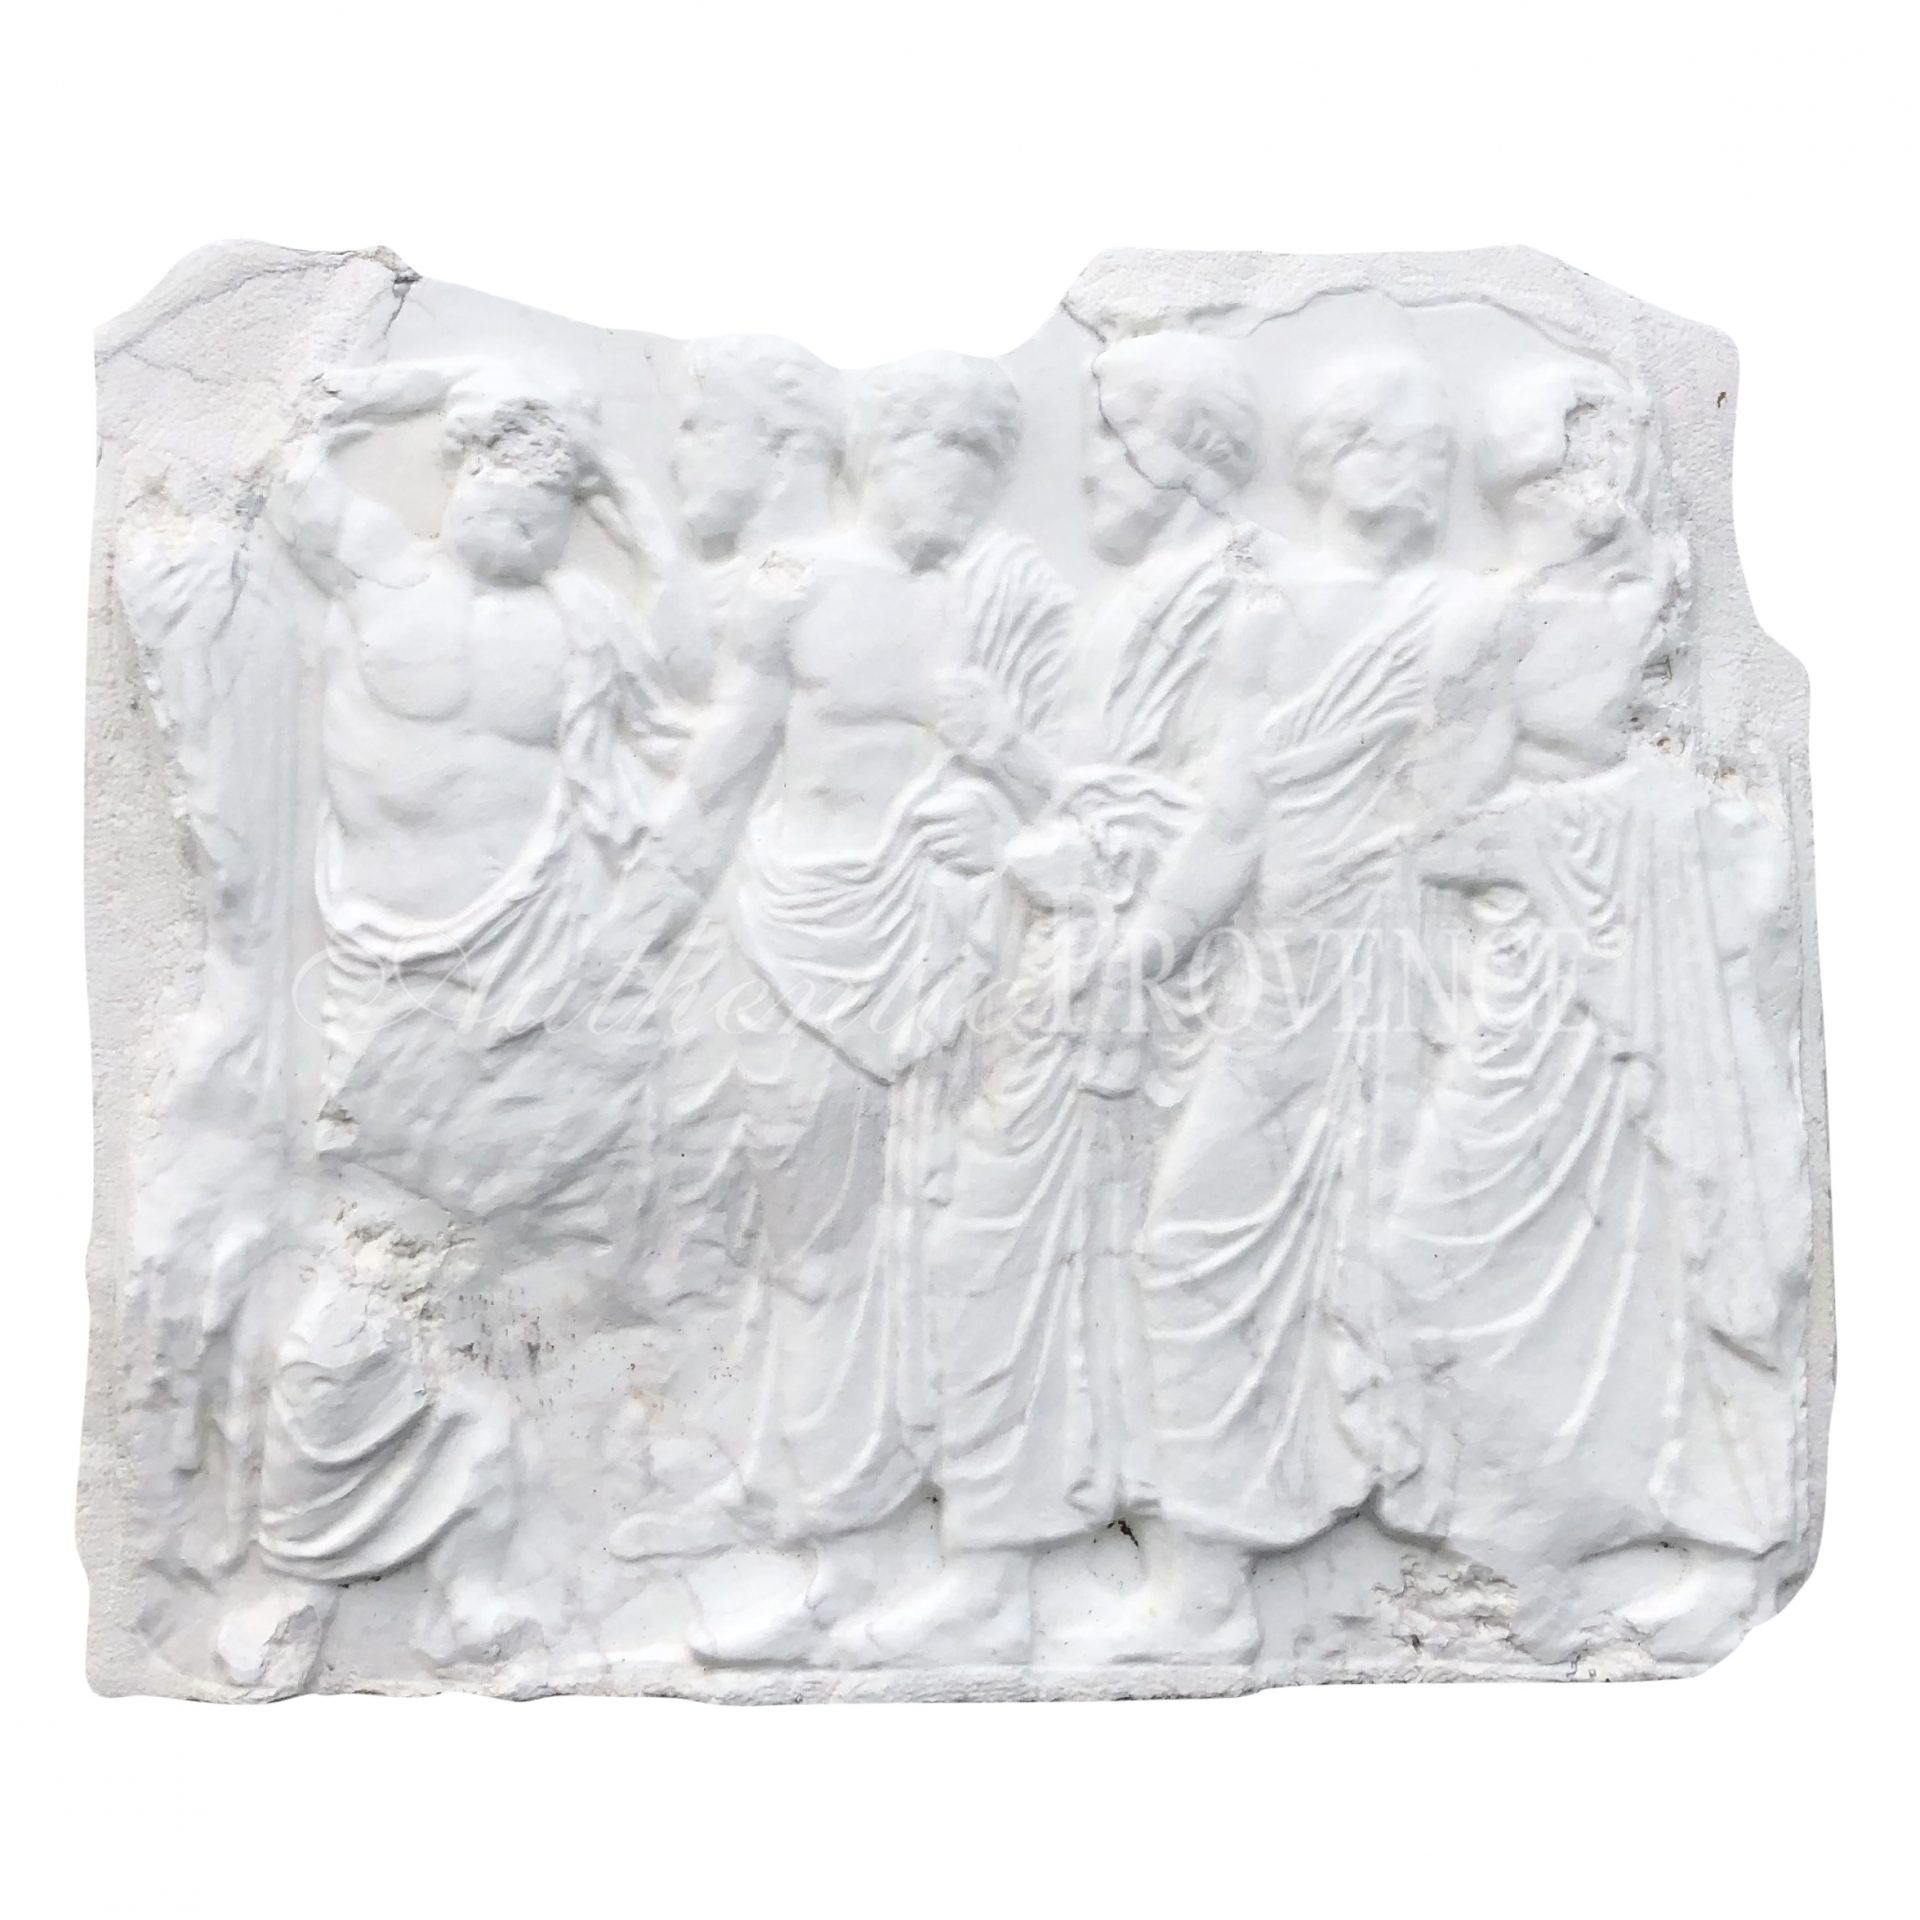 Parthenon Relief